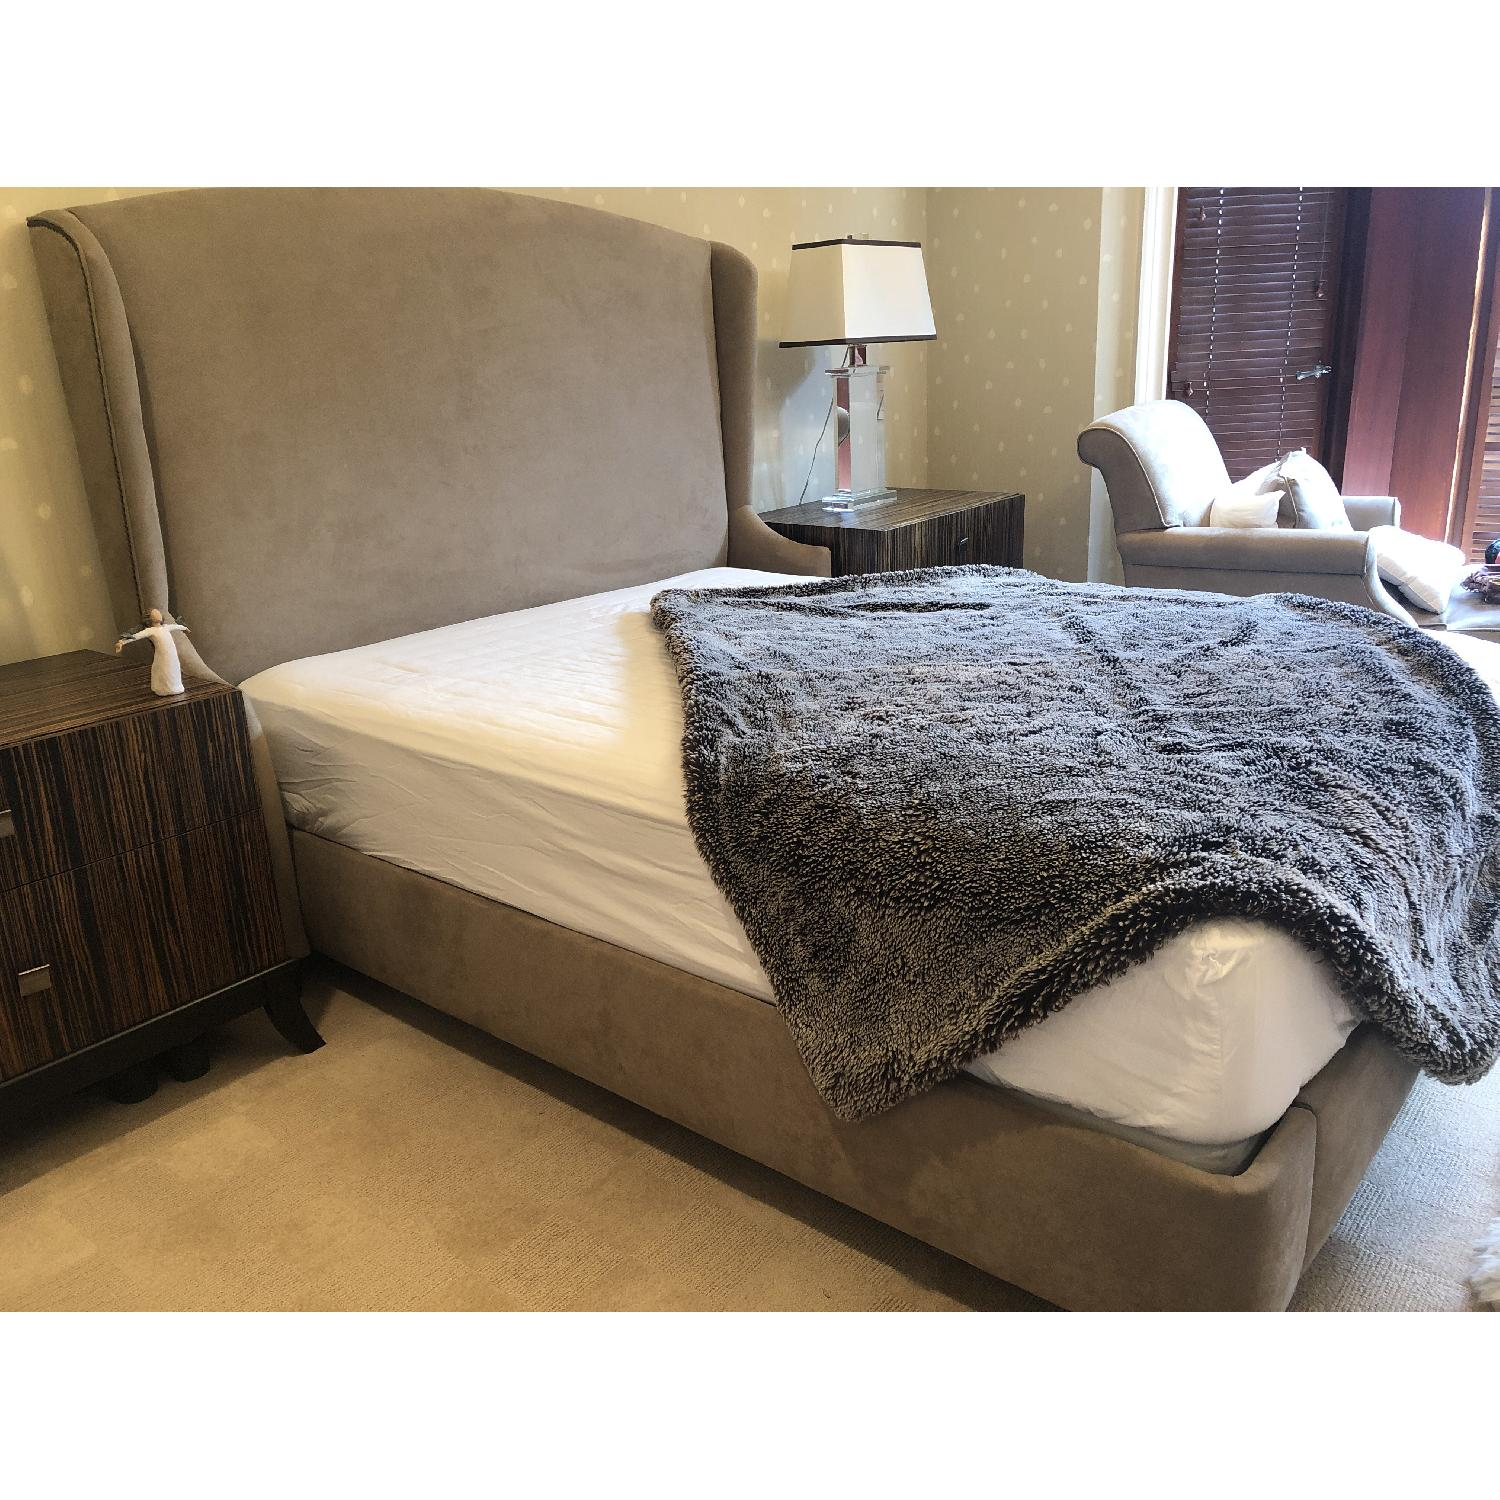 Modern Queen Size Bed - image-4